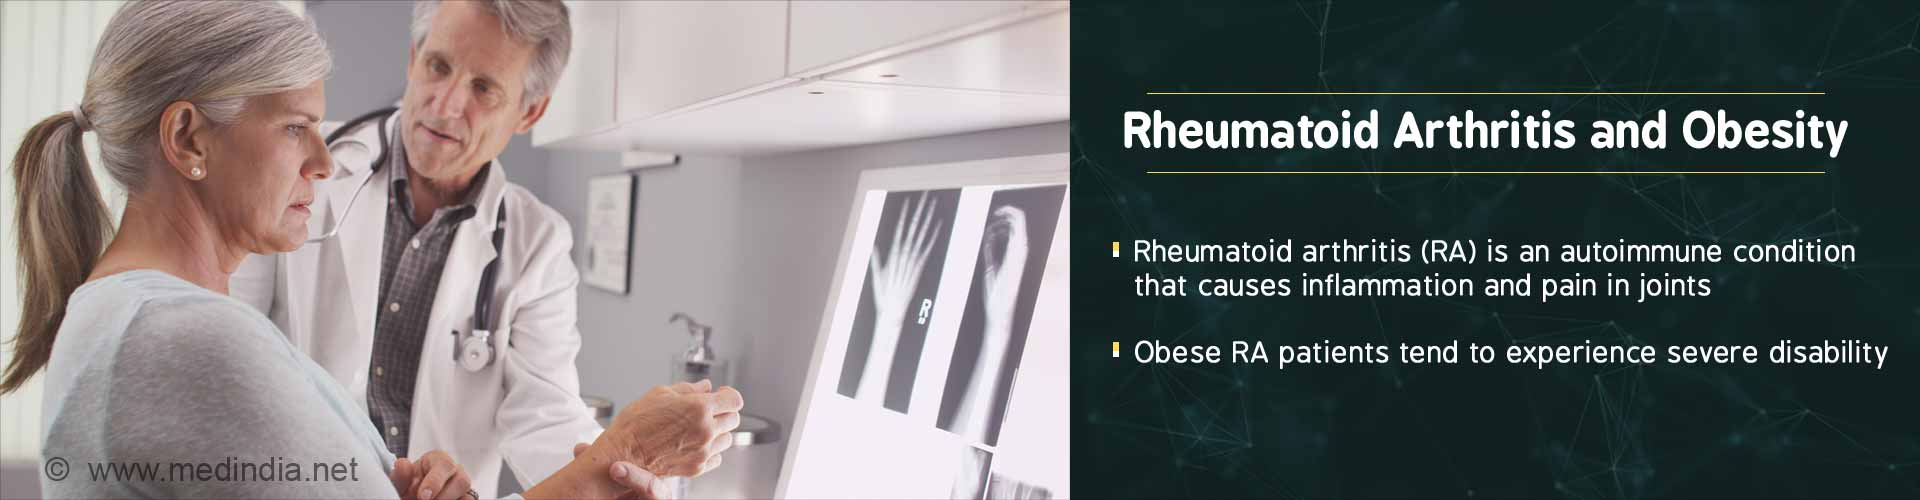 Obesity in Rheumatoid Arthritis Patients Might Hasten Disability